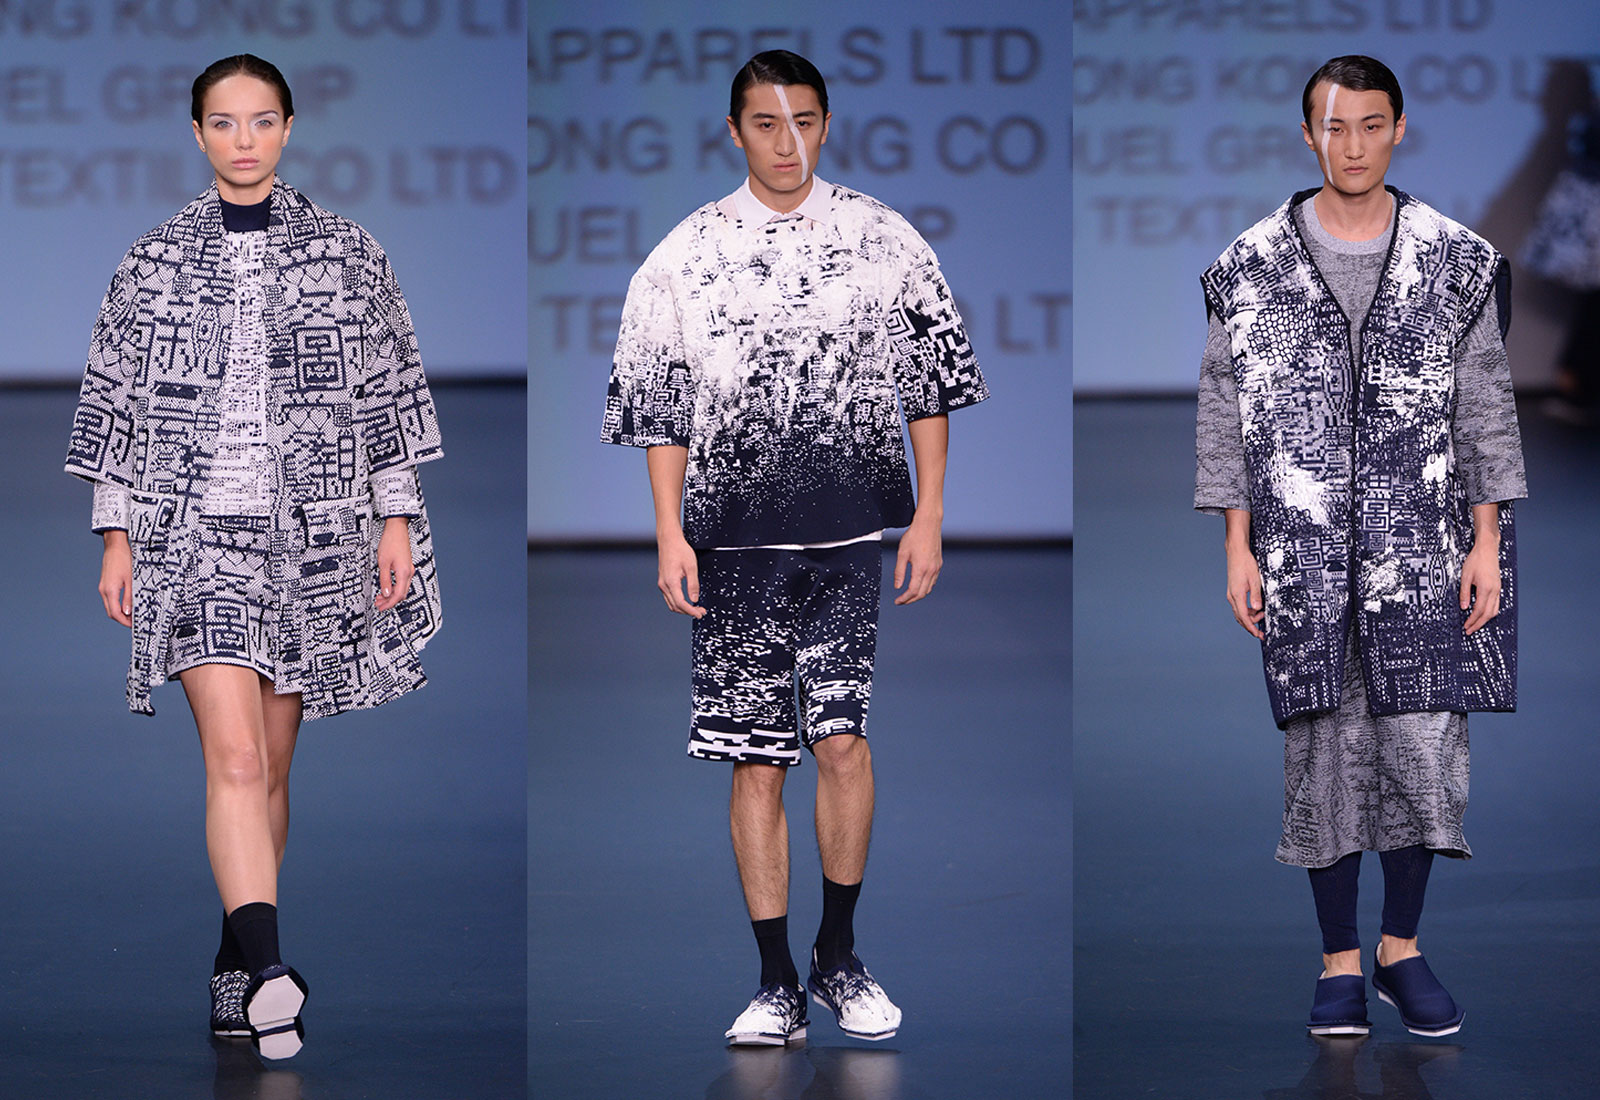 hong kong designers at 2016 fashion young designer's contest featuring arto wong hiu to word you see collection honourable mention 1600 x 1100